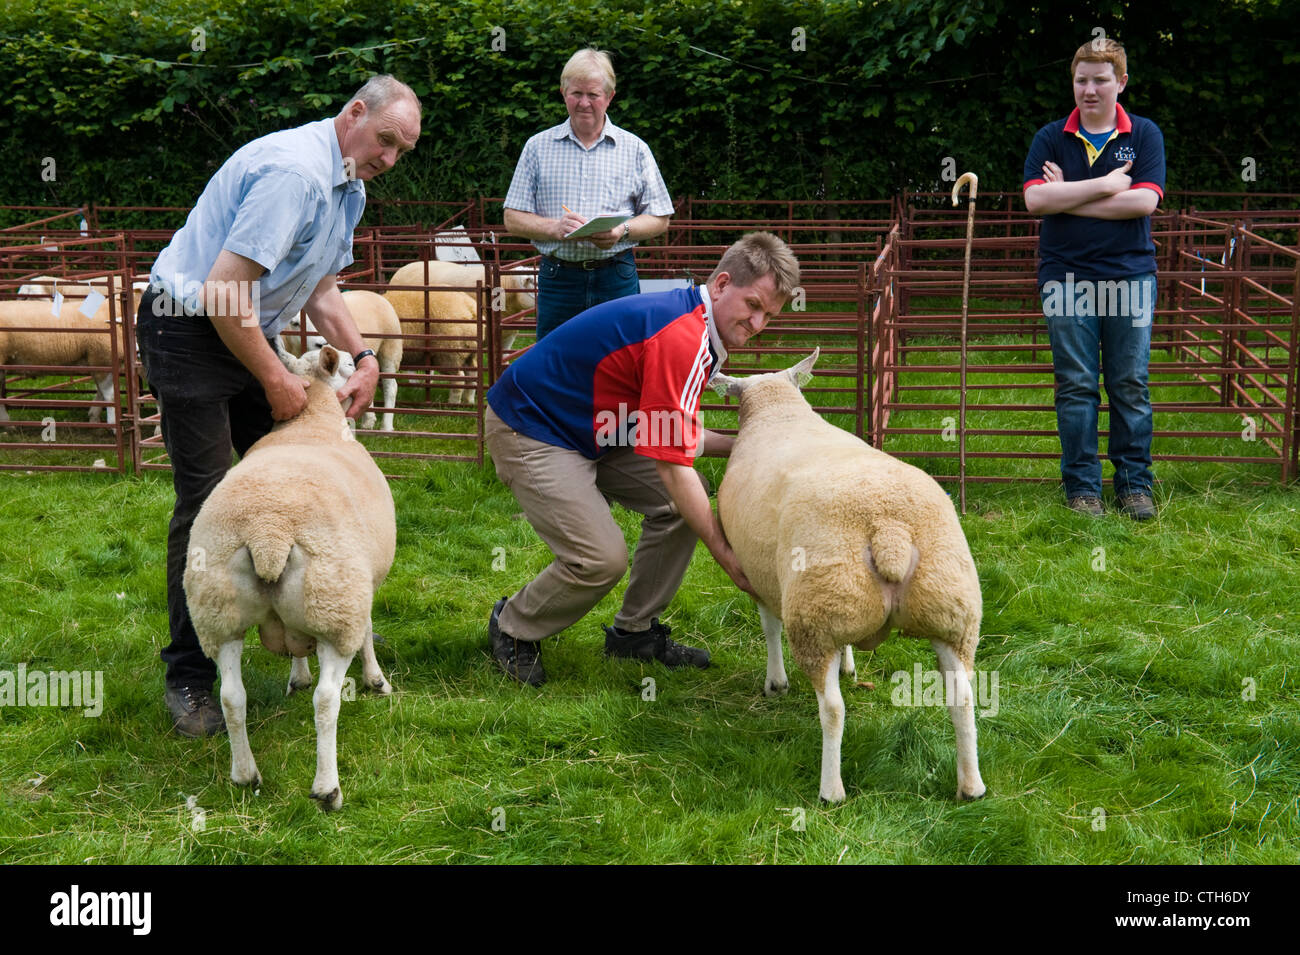 Country Show Stock Photos & Country Show Stock Images - Alamy